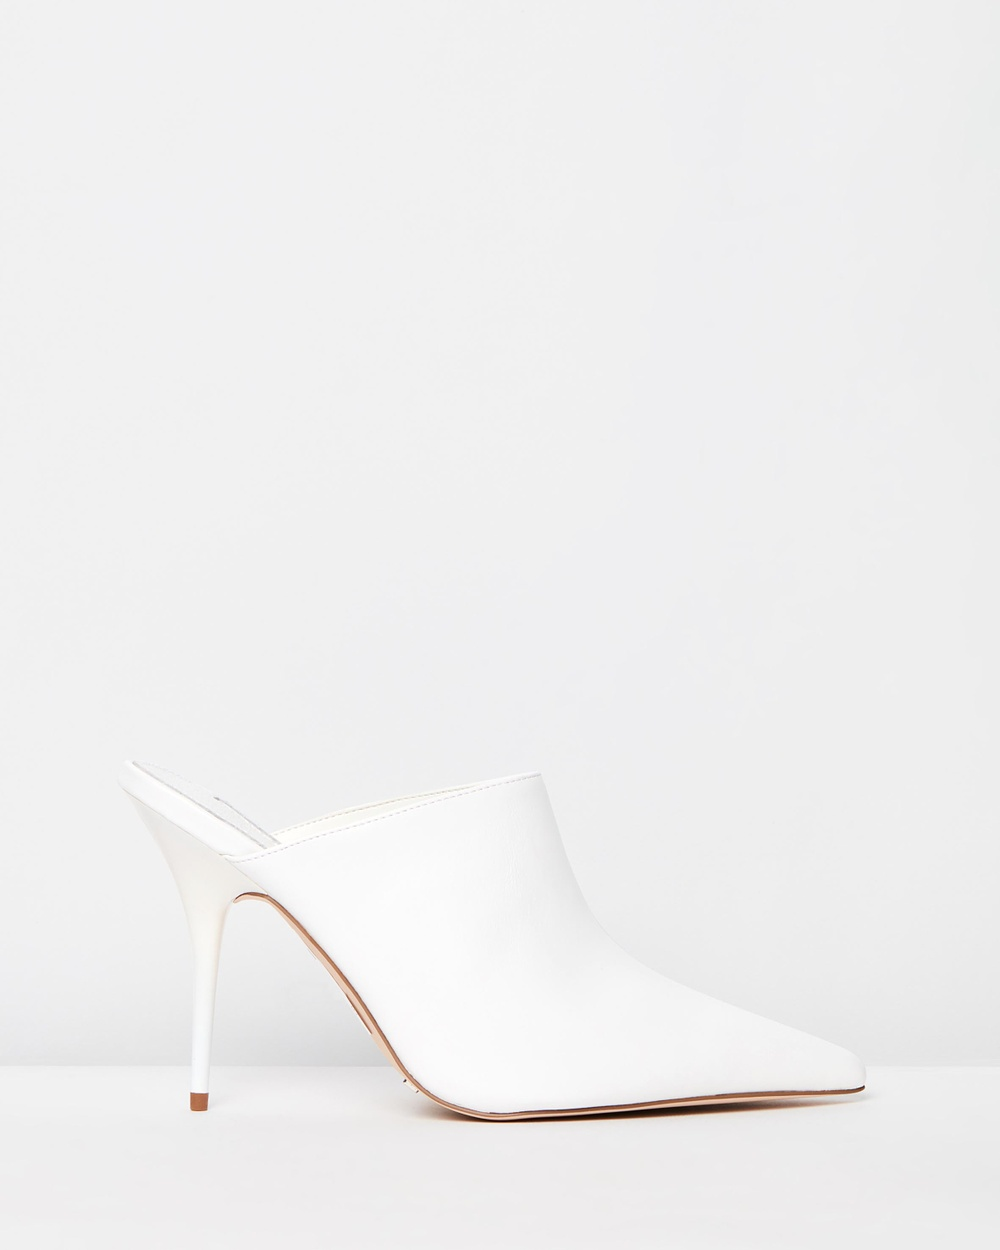 TOPSHOP Godiva Long Point Mules Heels White Godiva Long Point Mules